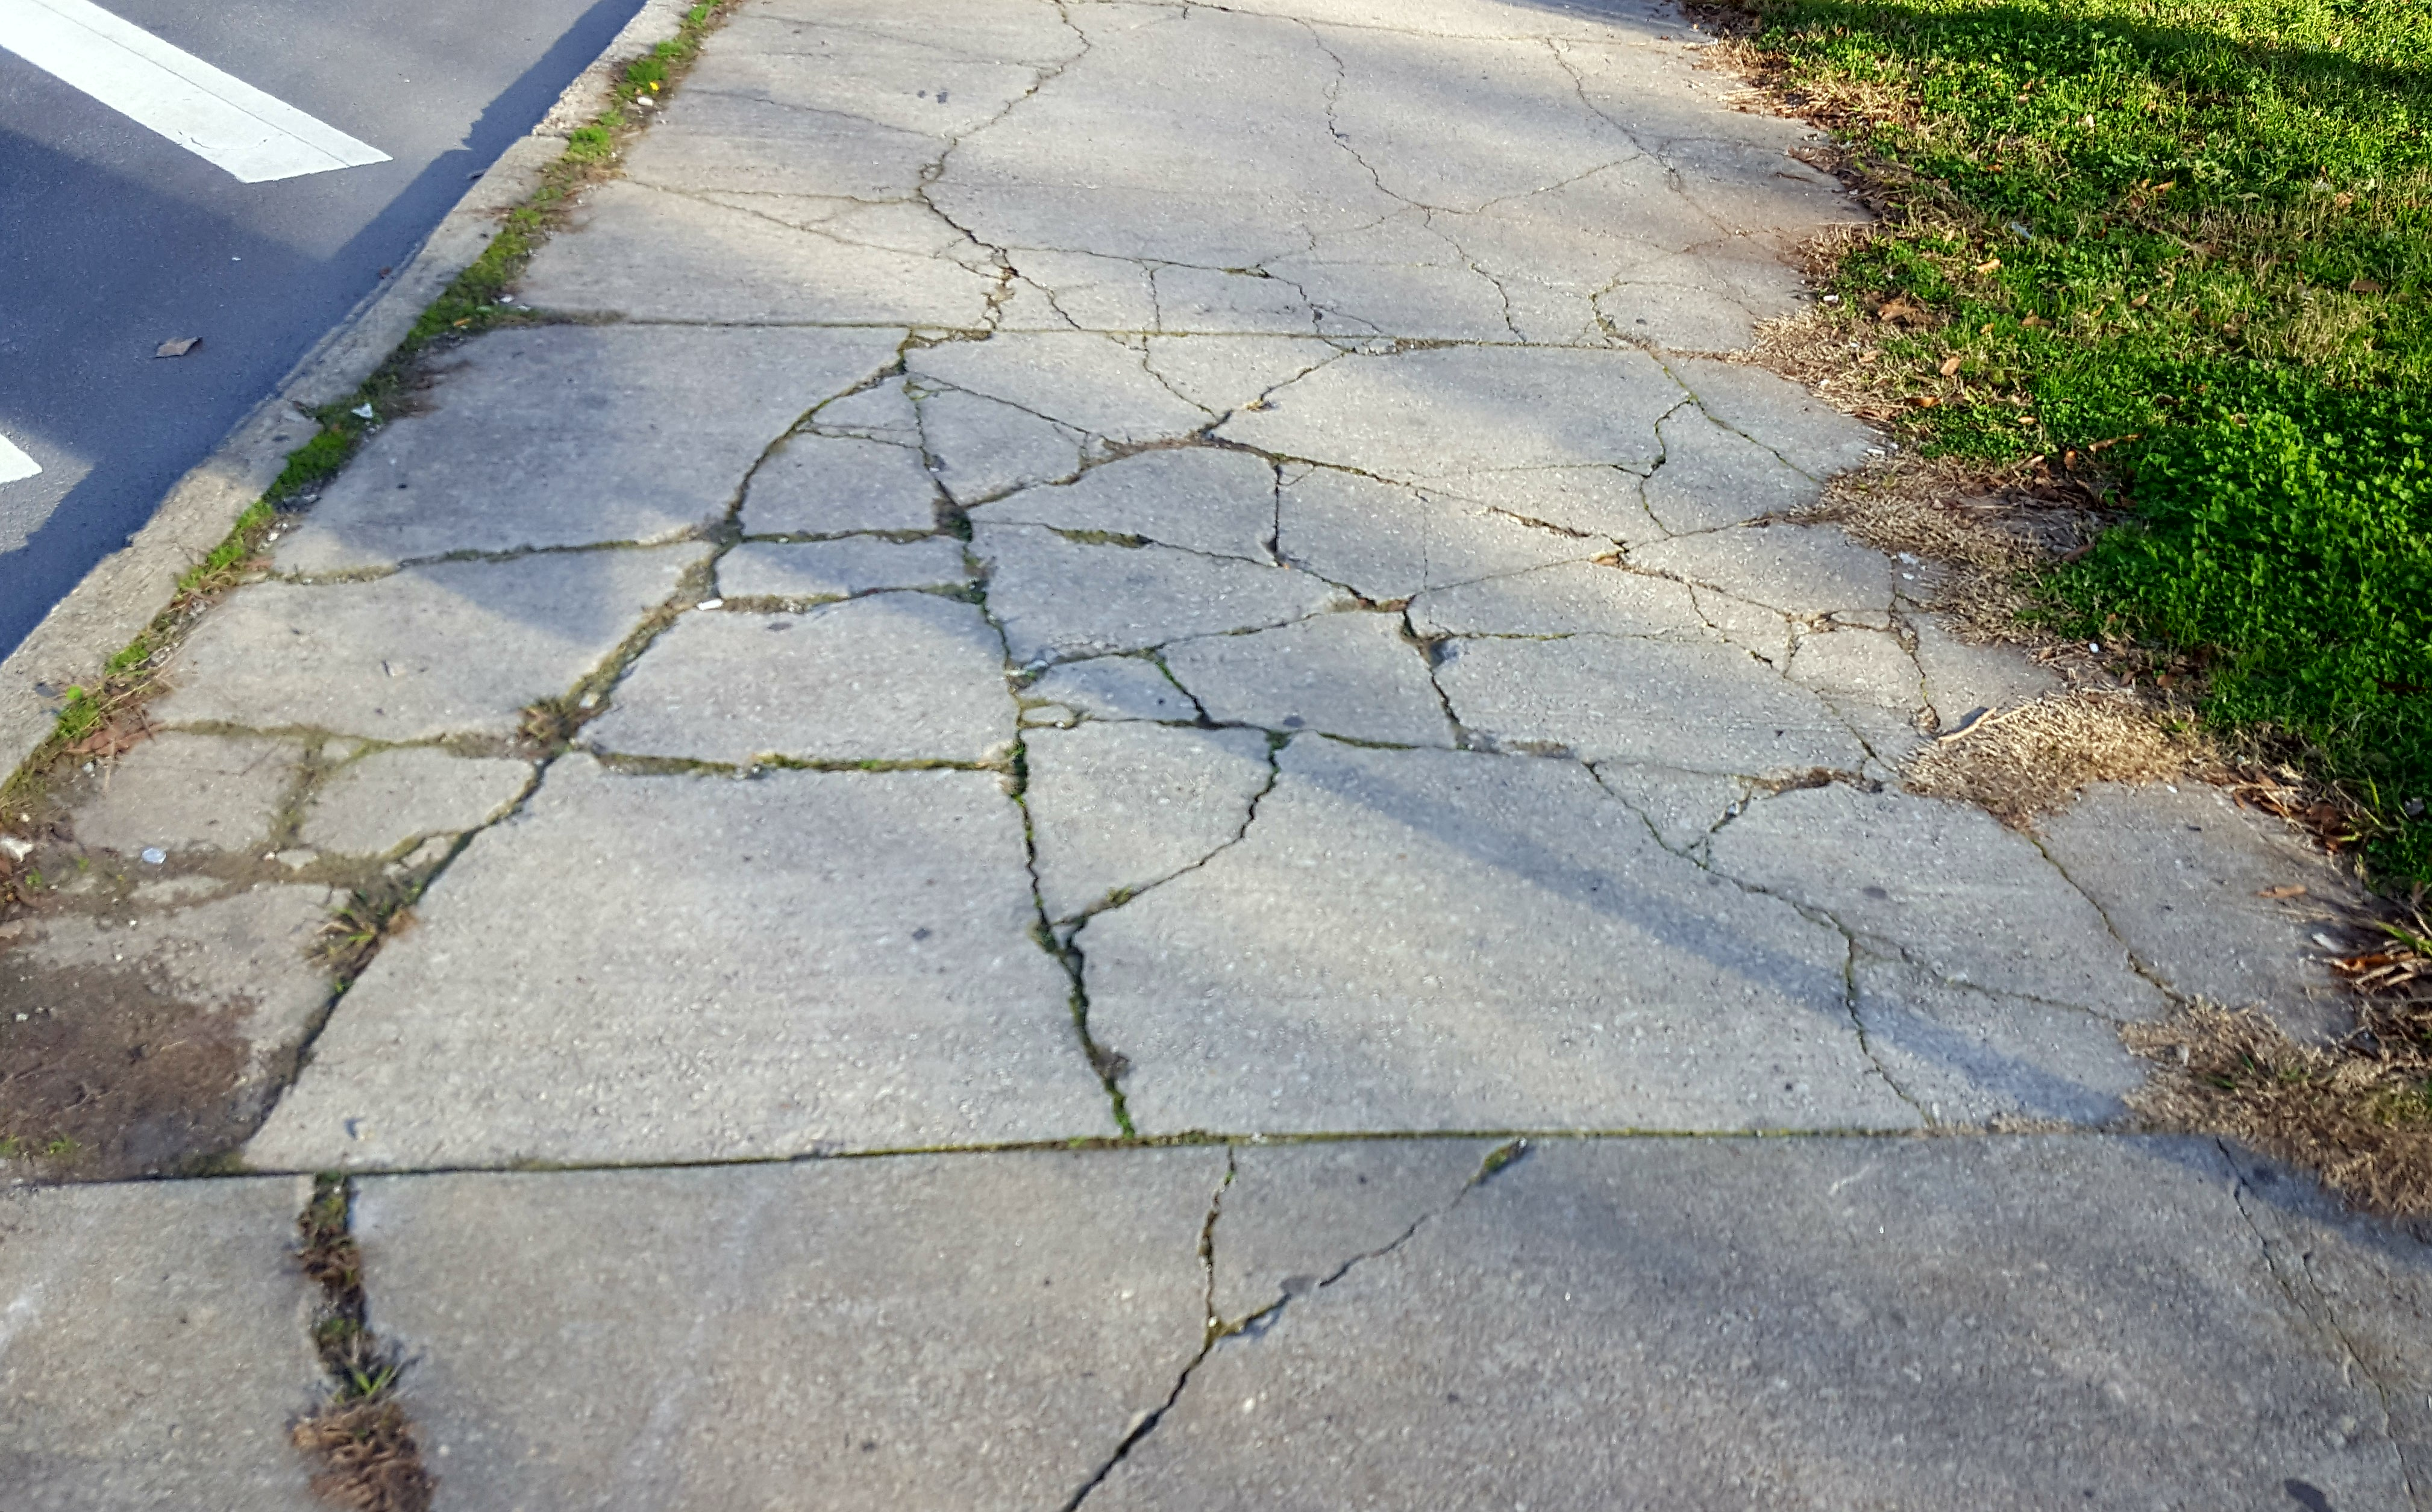 A picture of a cracked sidewalk.